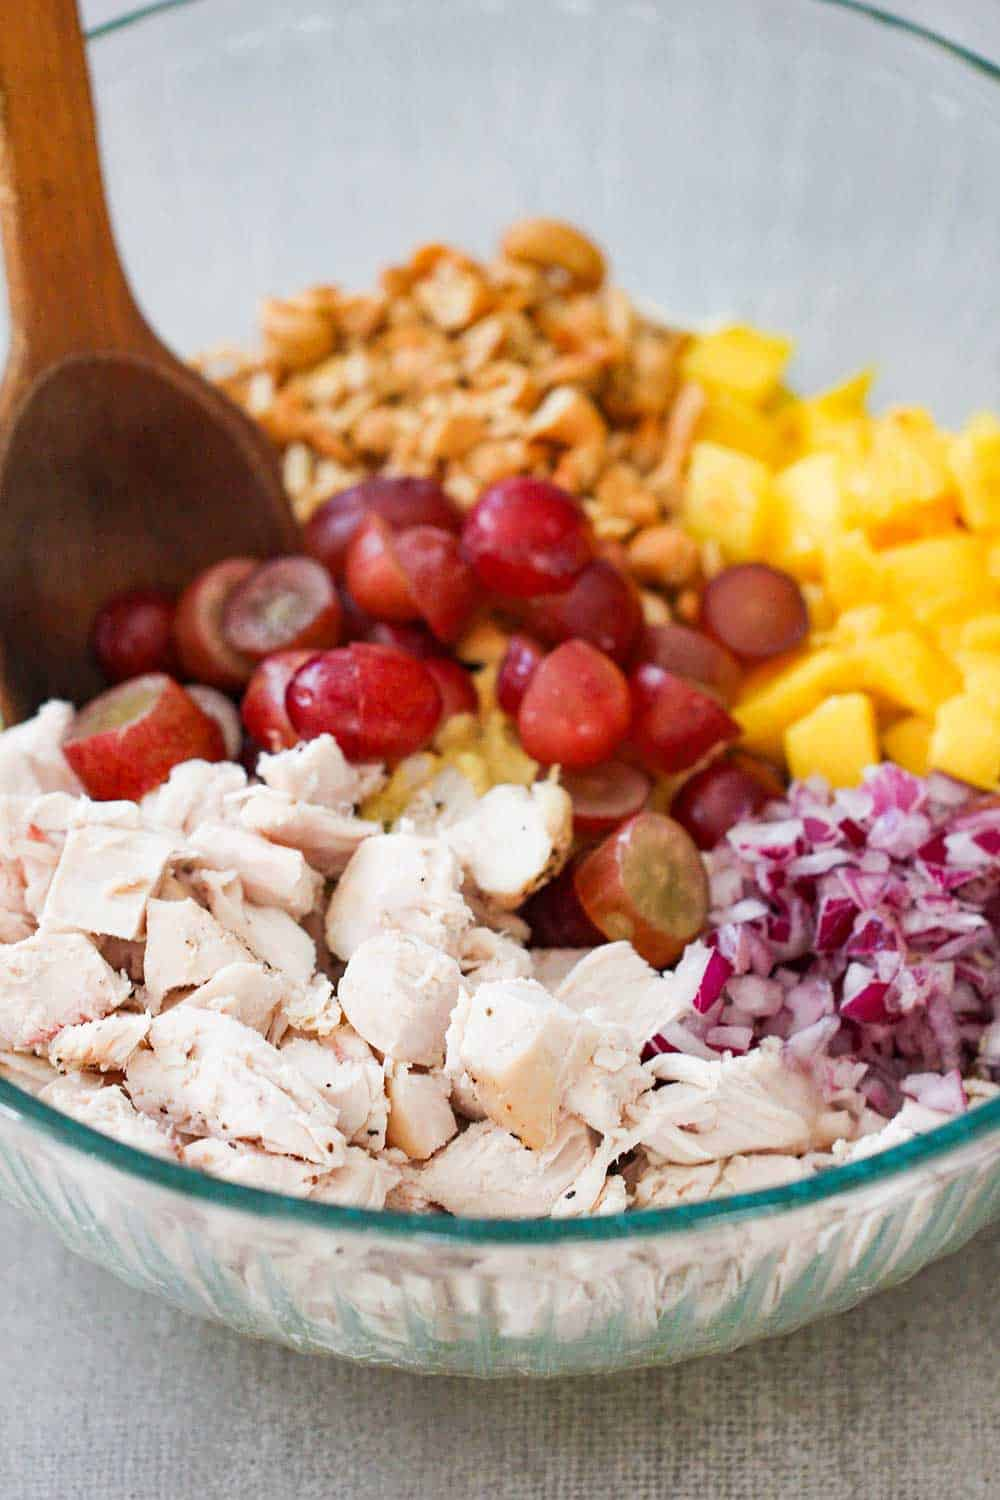 A large glass bowl of cooked cubed chicken, grapes and mango for chicken salad.